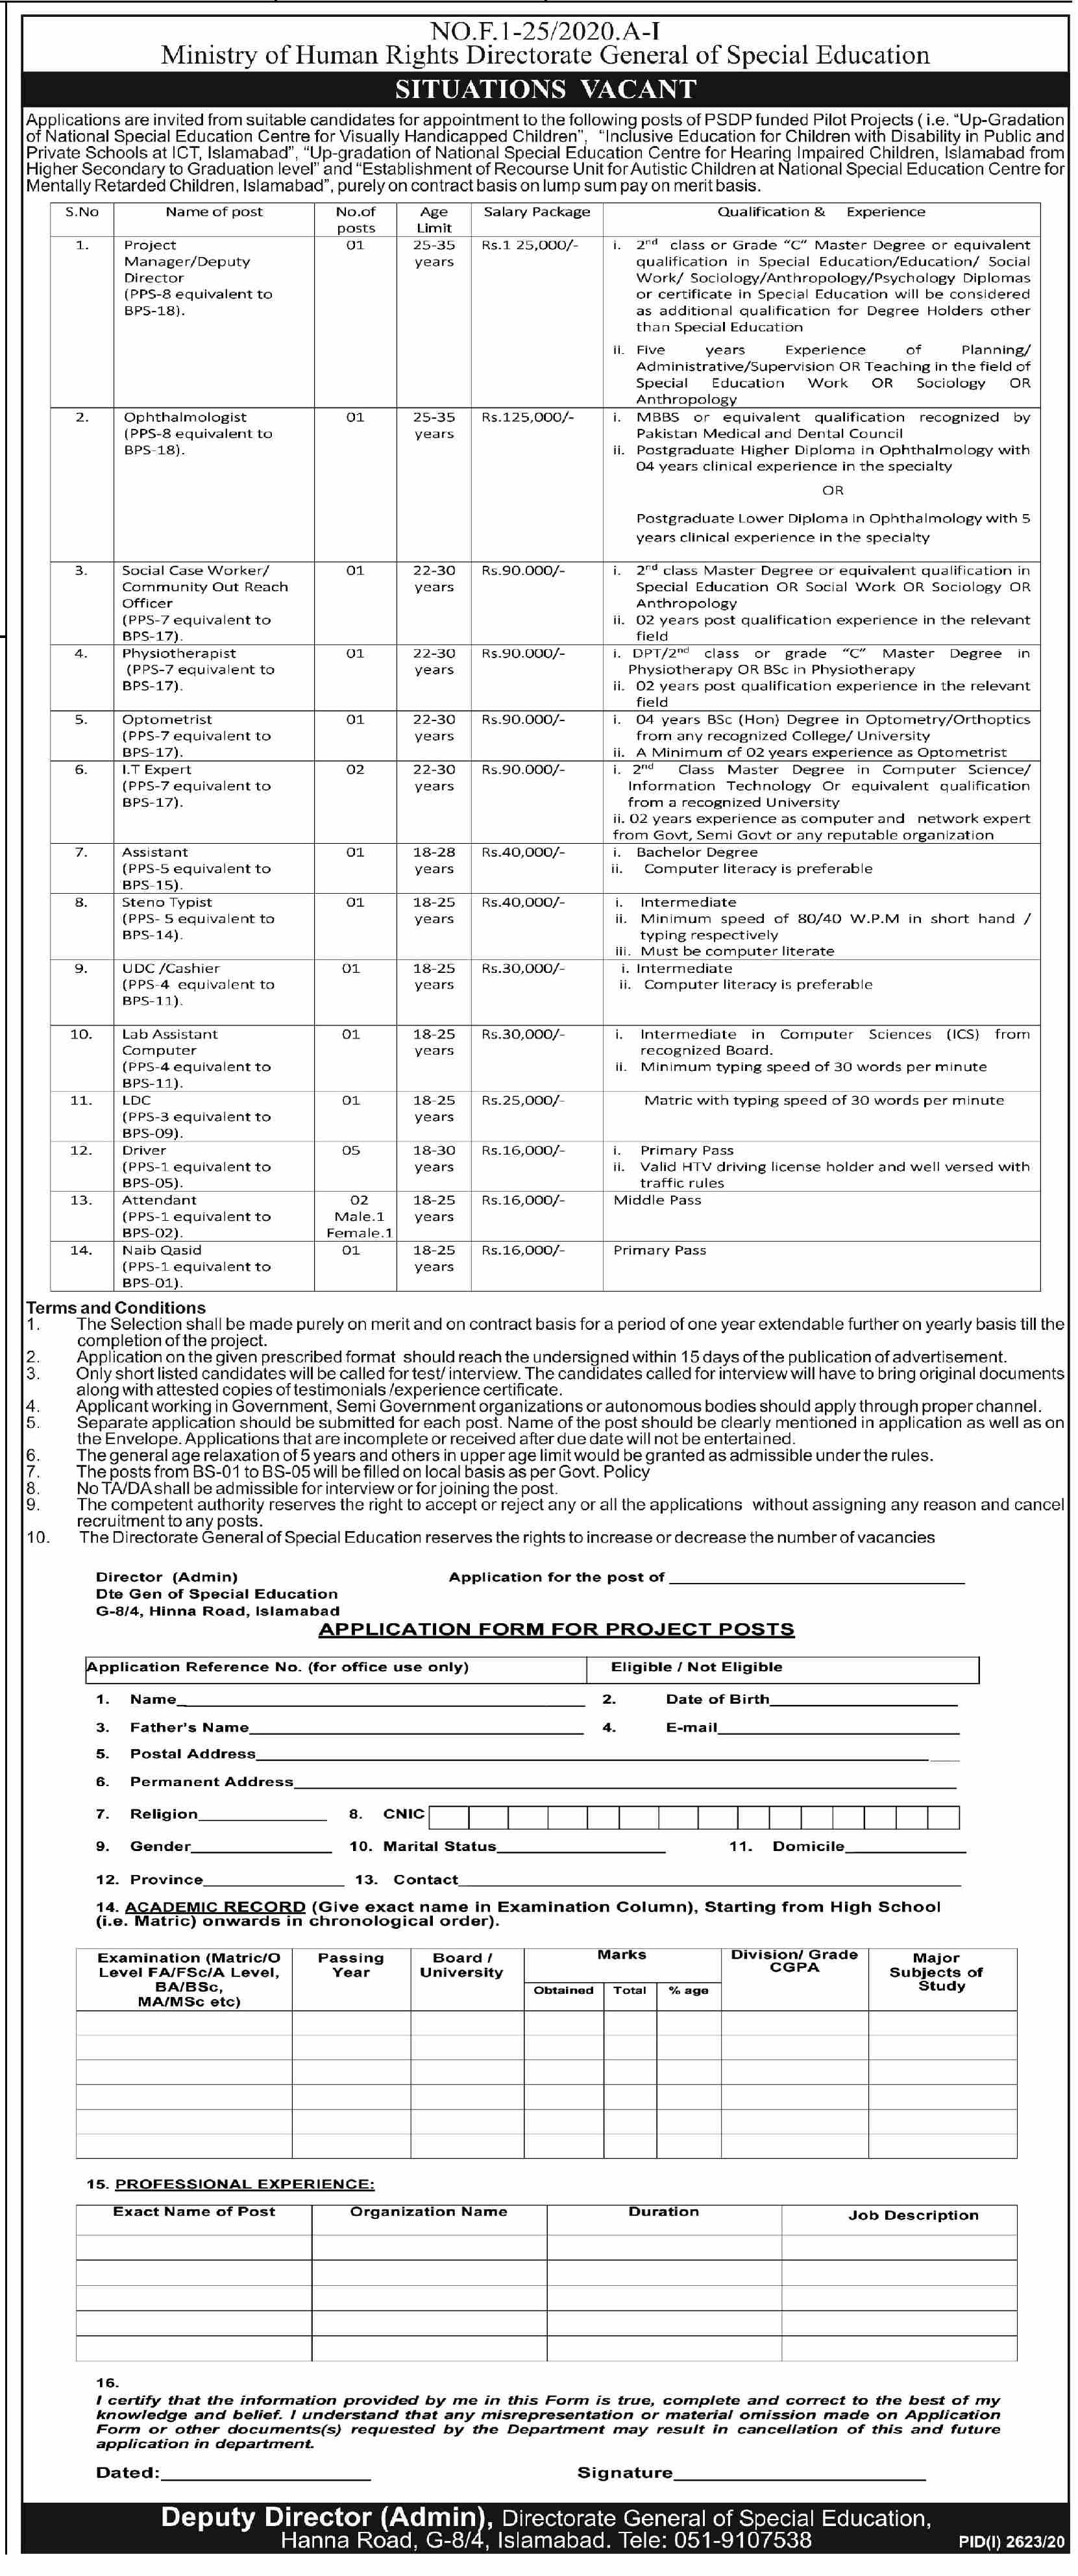 Ministry Of Human Rights jobs newspaper ad for Social Case Worker in Islamabad